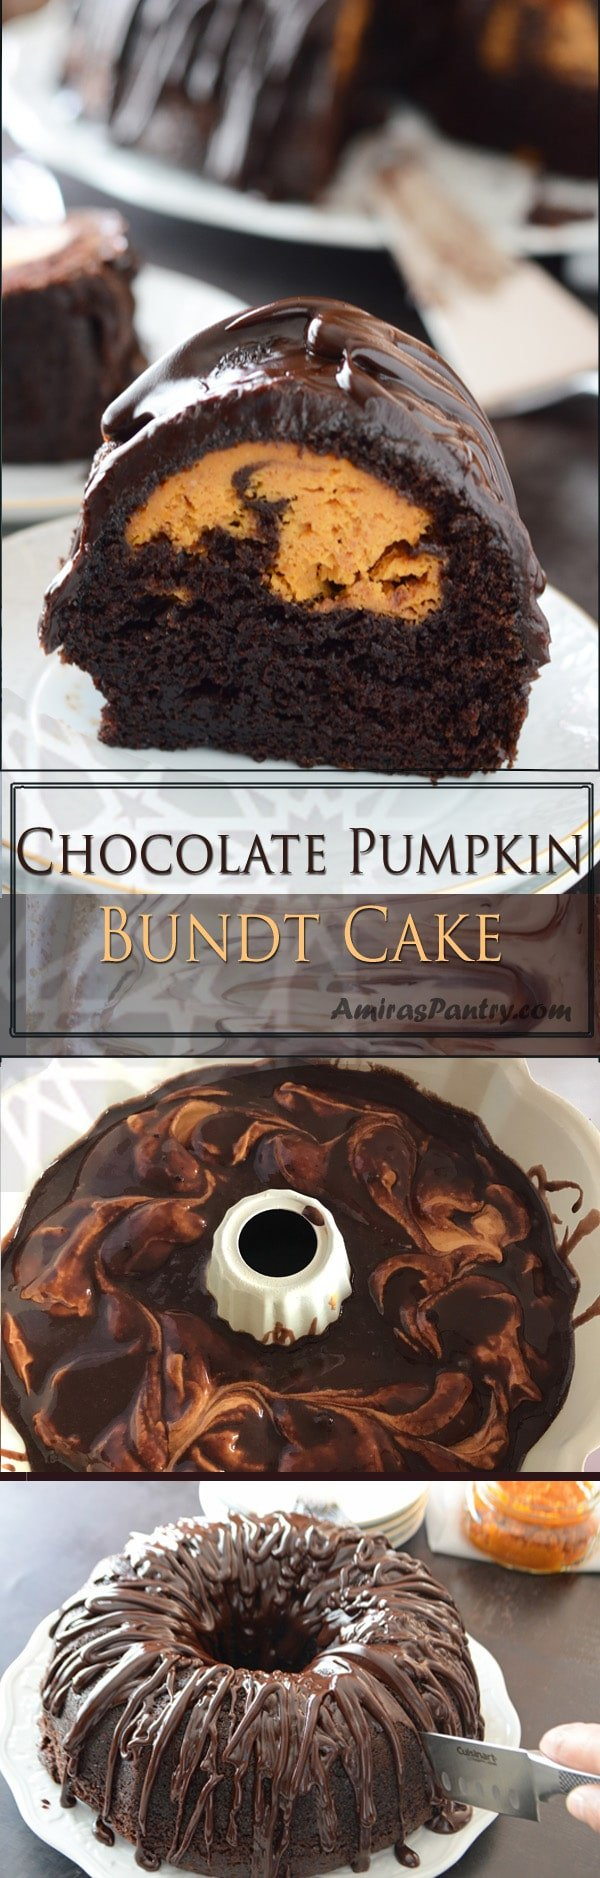 Pumpkin cream cheese bundt cake with the best chocolate glaze for bundt cake you'll ever have. One of the best pumpkin dessert recipes that will actually seduce pumpkin haters.